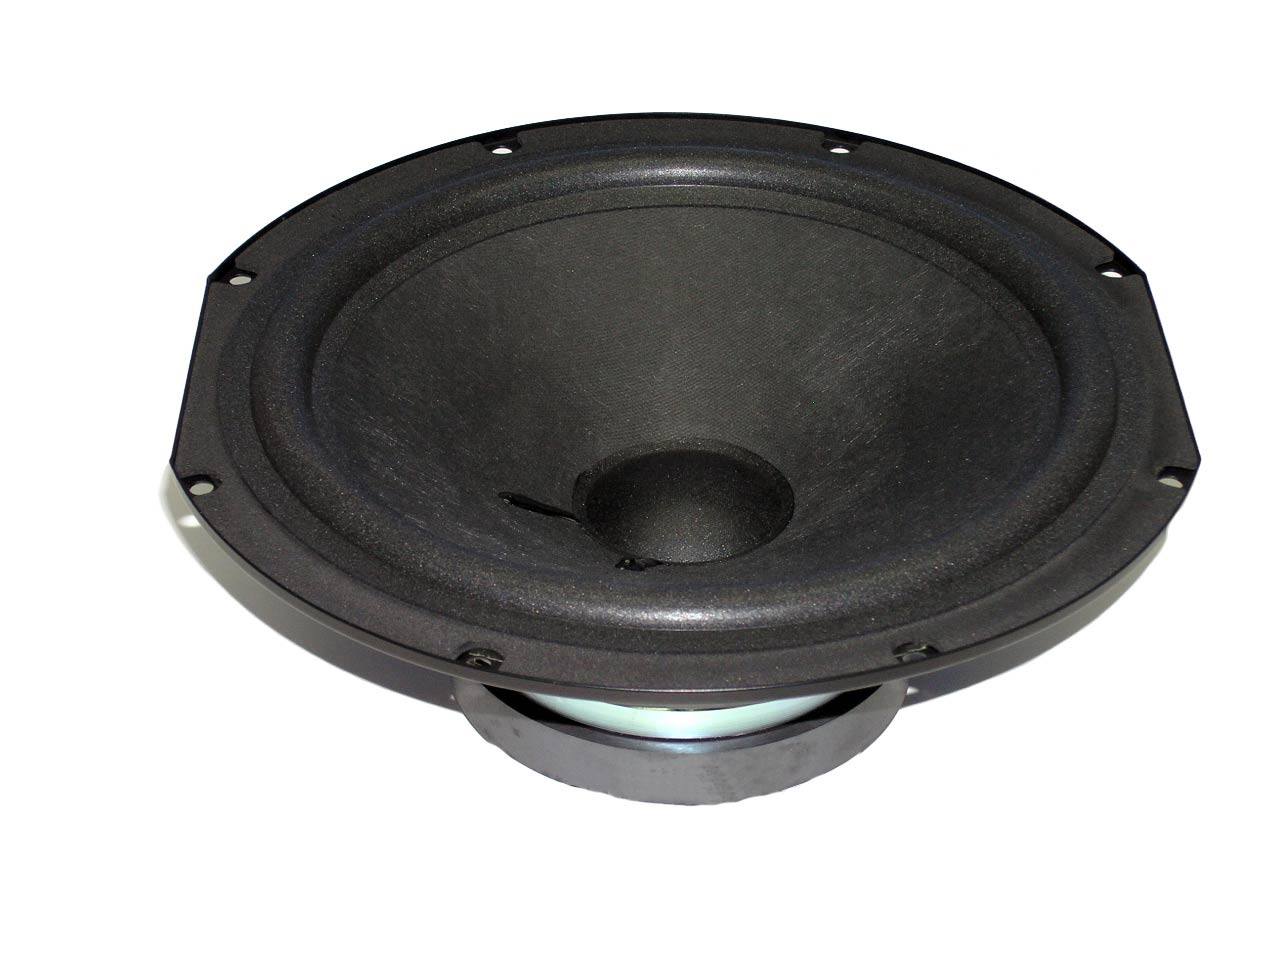 Acoustic Research Factory Replacement Woofer Ar3 Ar9 58 98 Lst Others 12100032